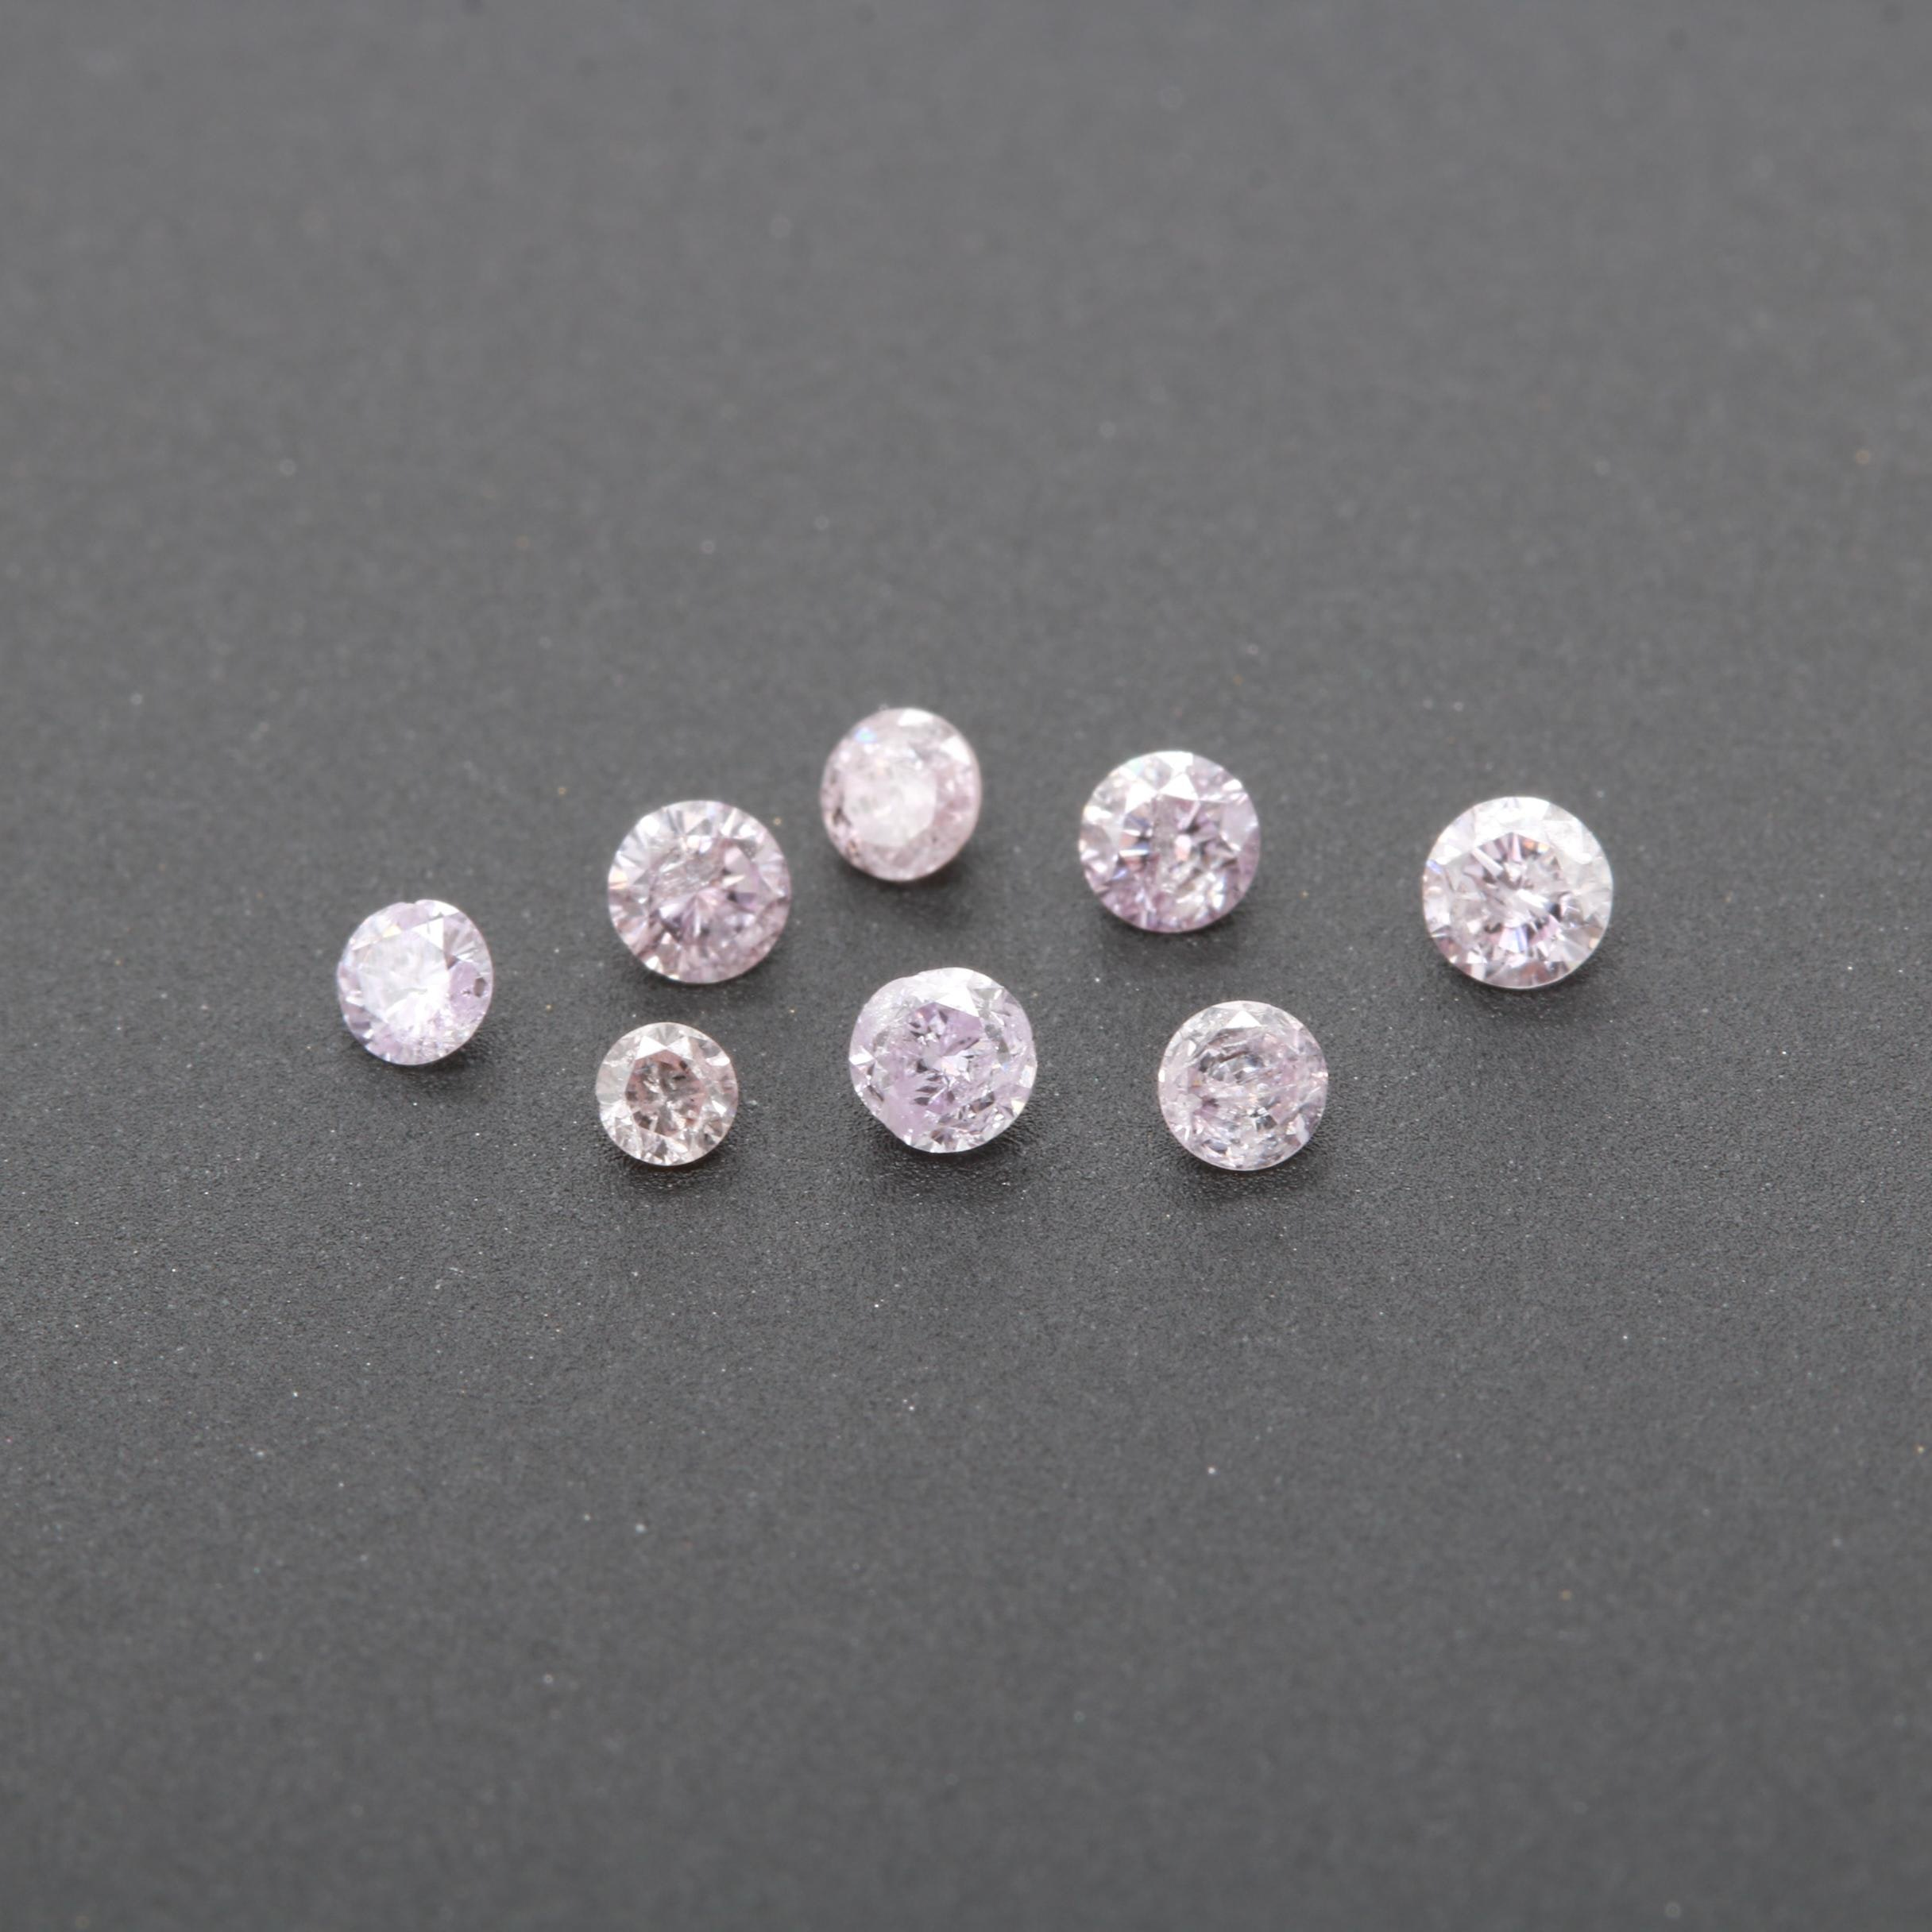 Loose 0.34 CTW Diamond Gemstones